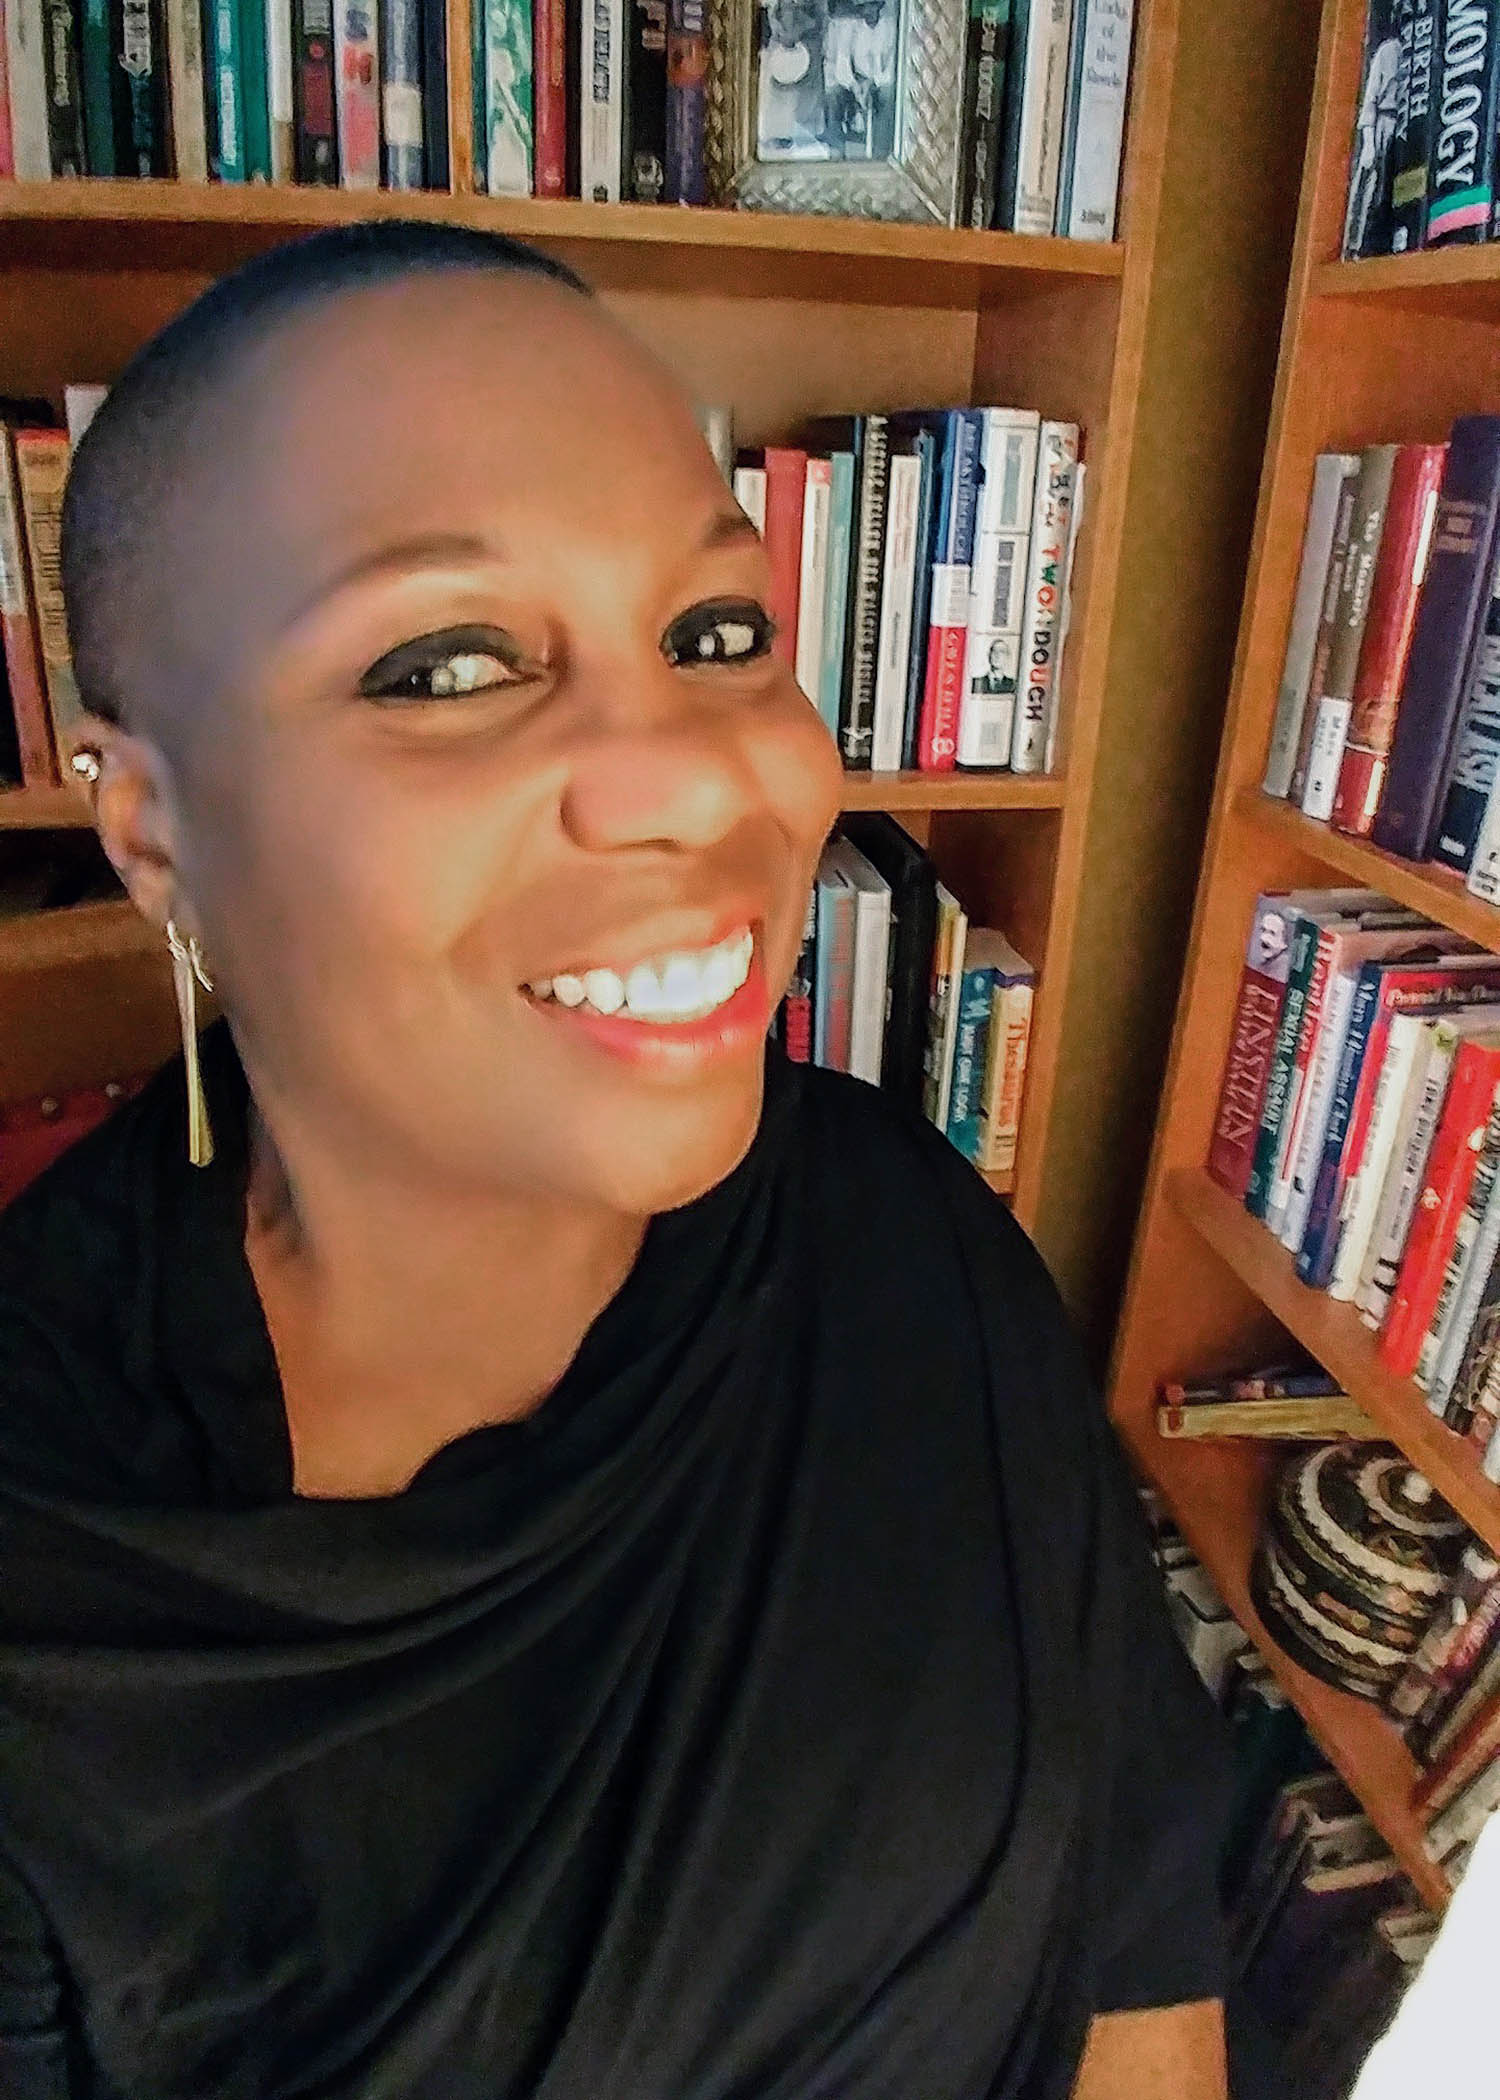 Bertice Berry, Ph.D., an award-winning, lecturer and comedienne and Kent State University alumna, will serve as the keynote speaker at Kent State's 16th annual Martin Luther King Jr. Celebration. The event will take place Jan. 25 at 3:30 p.m. in the Kent Student Center Ballroom. (Photo provided by Bertice Berry)